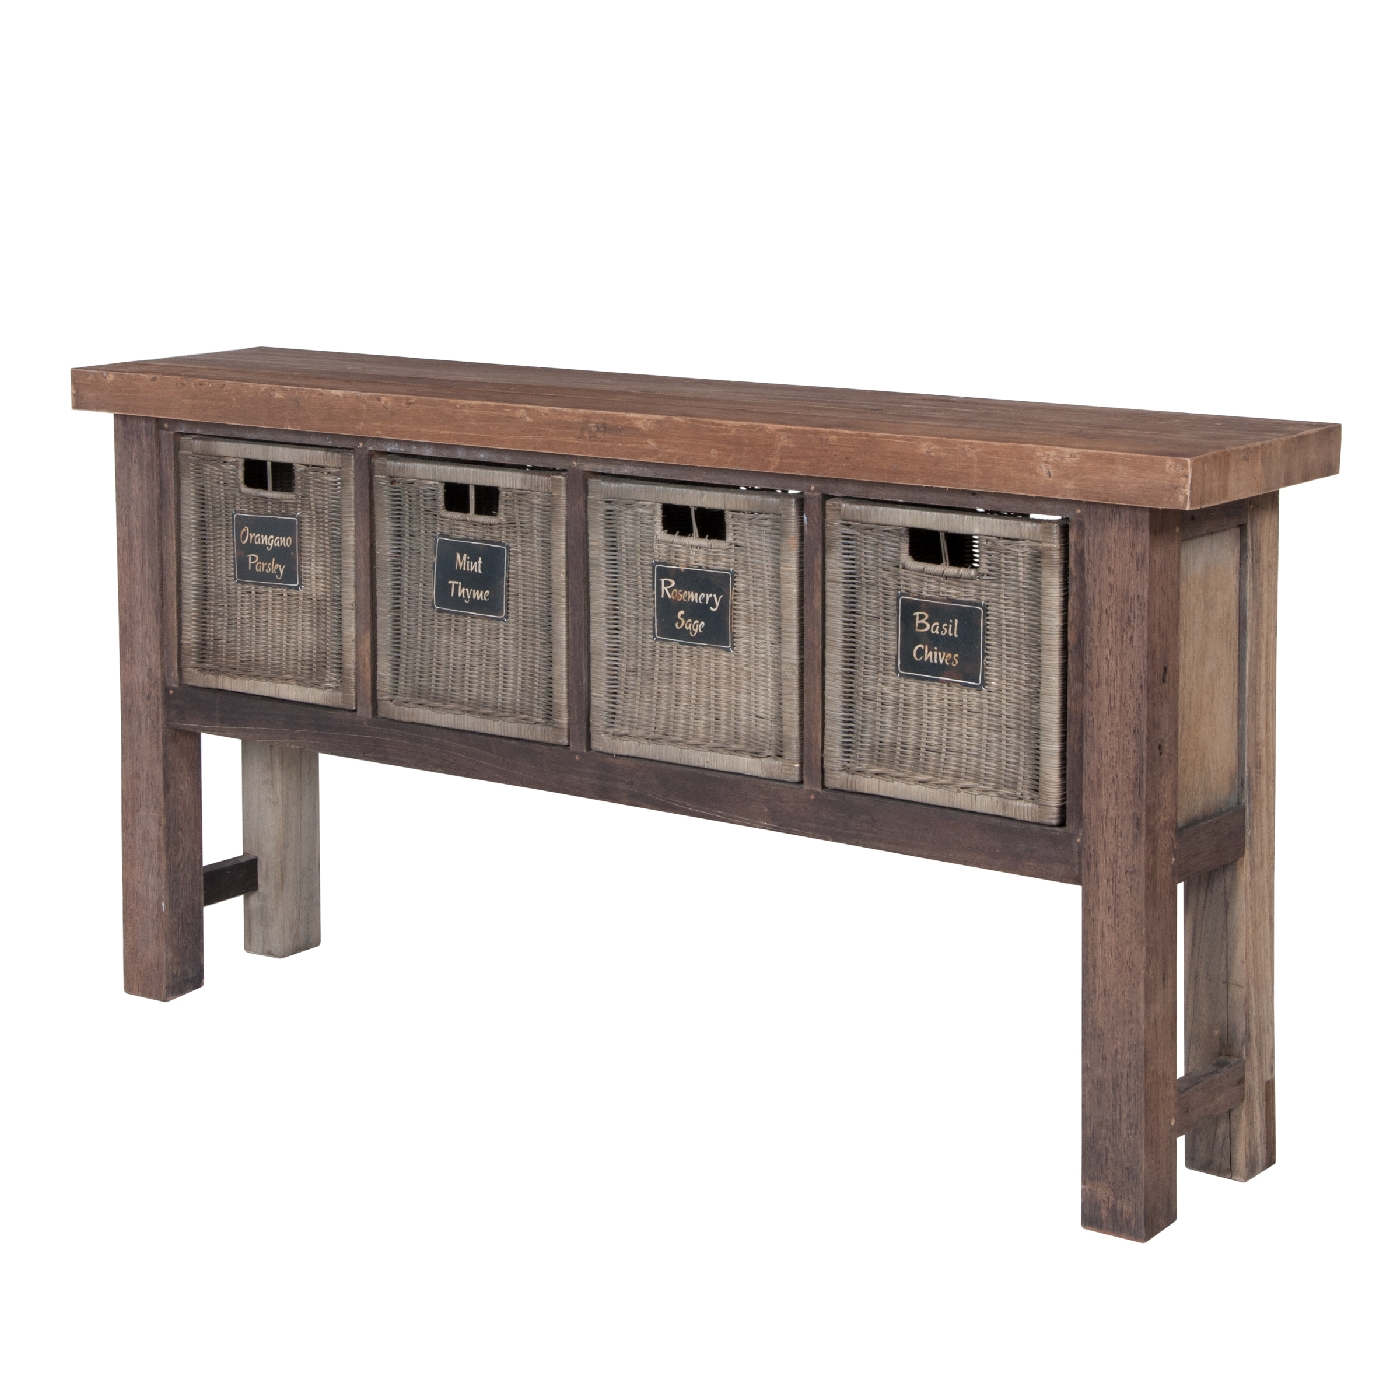 RECLAIMED WOOD WORKTABLE BASKETS GUILDMASTER WORKTABLE - Reclaimed wood work table